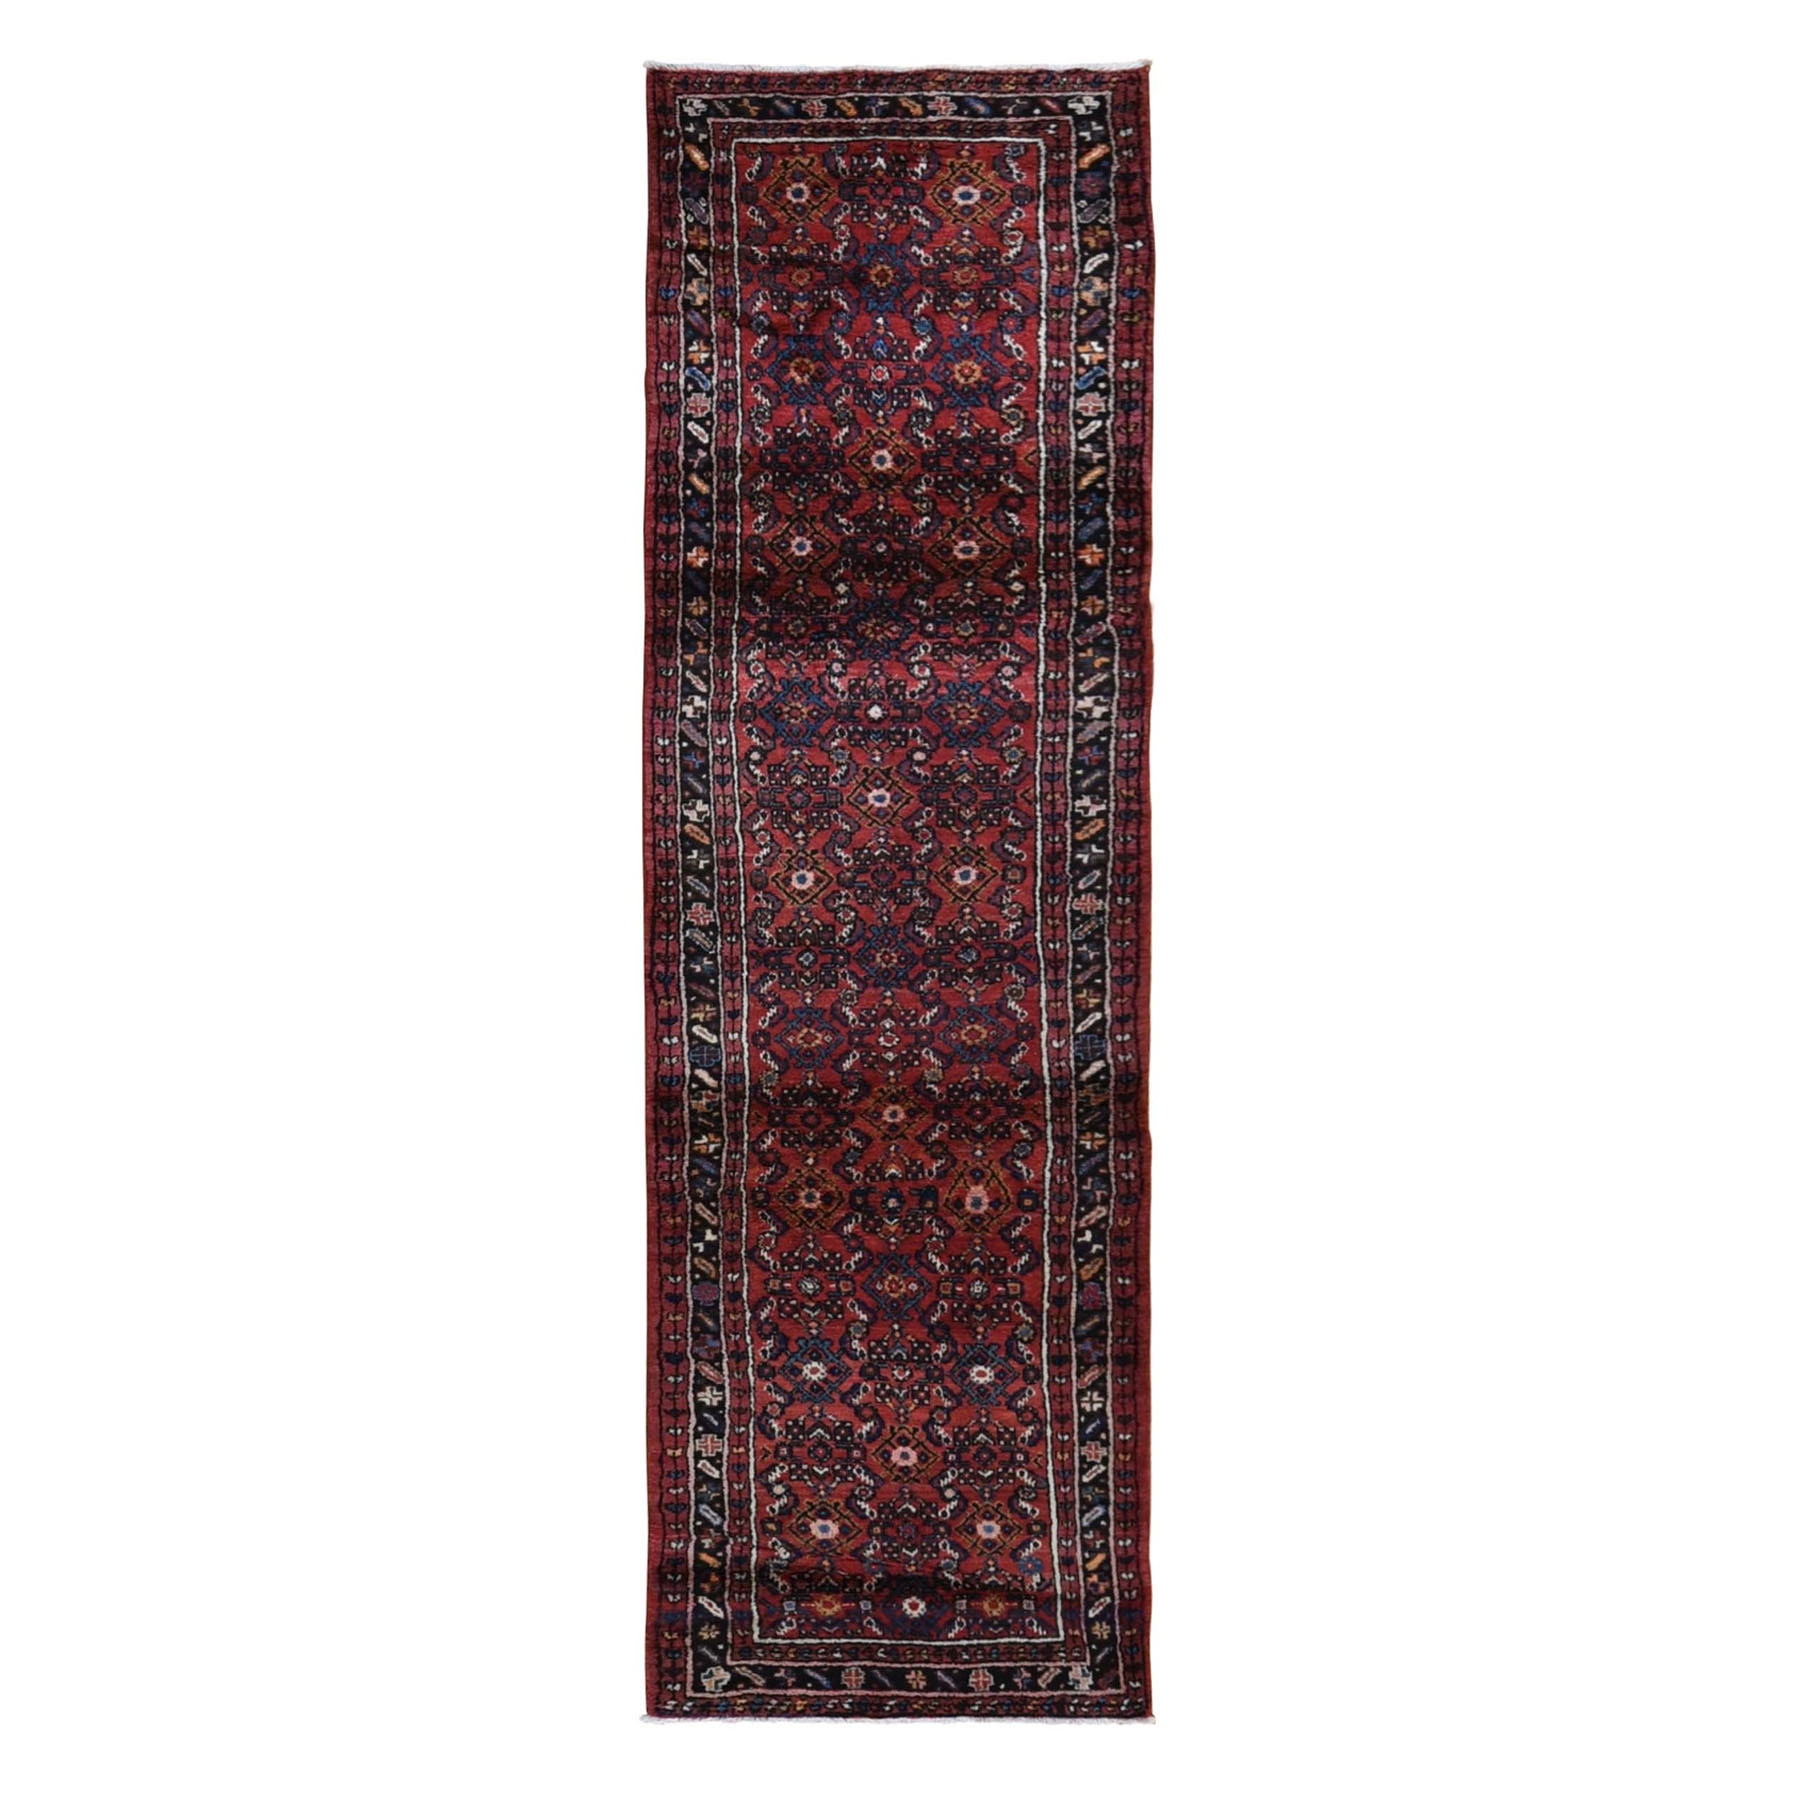 "2'8""x10' Red New Persian Hamadan Fish Design Wool Hand Knotted Narrow Runner Oriental Rug"